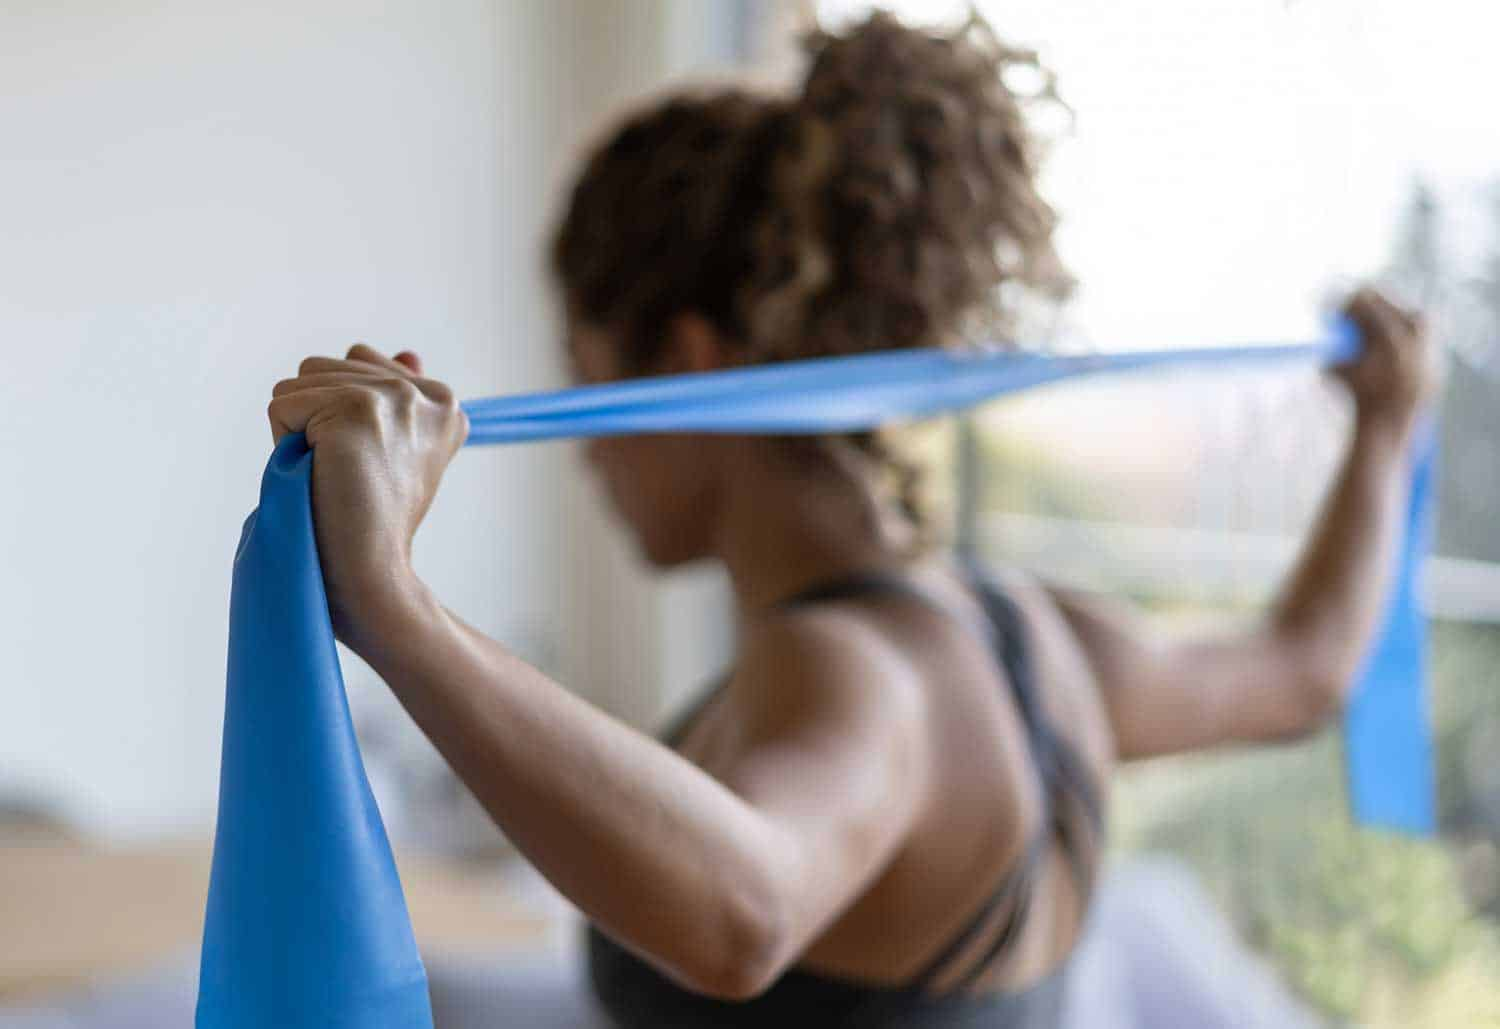 Strong woman exercising at home during the quarantine using resistance bands